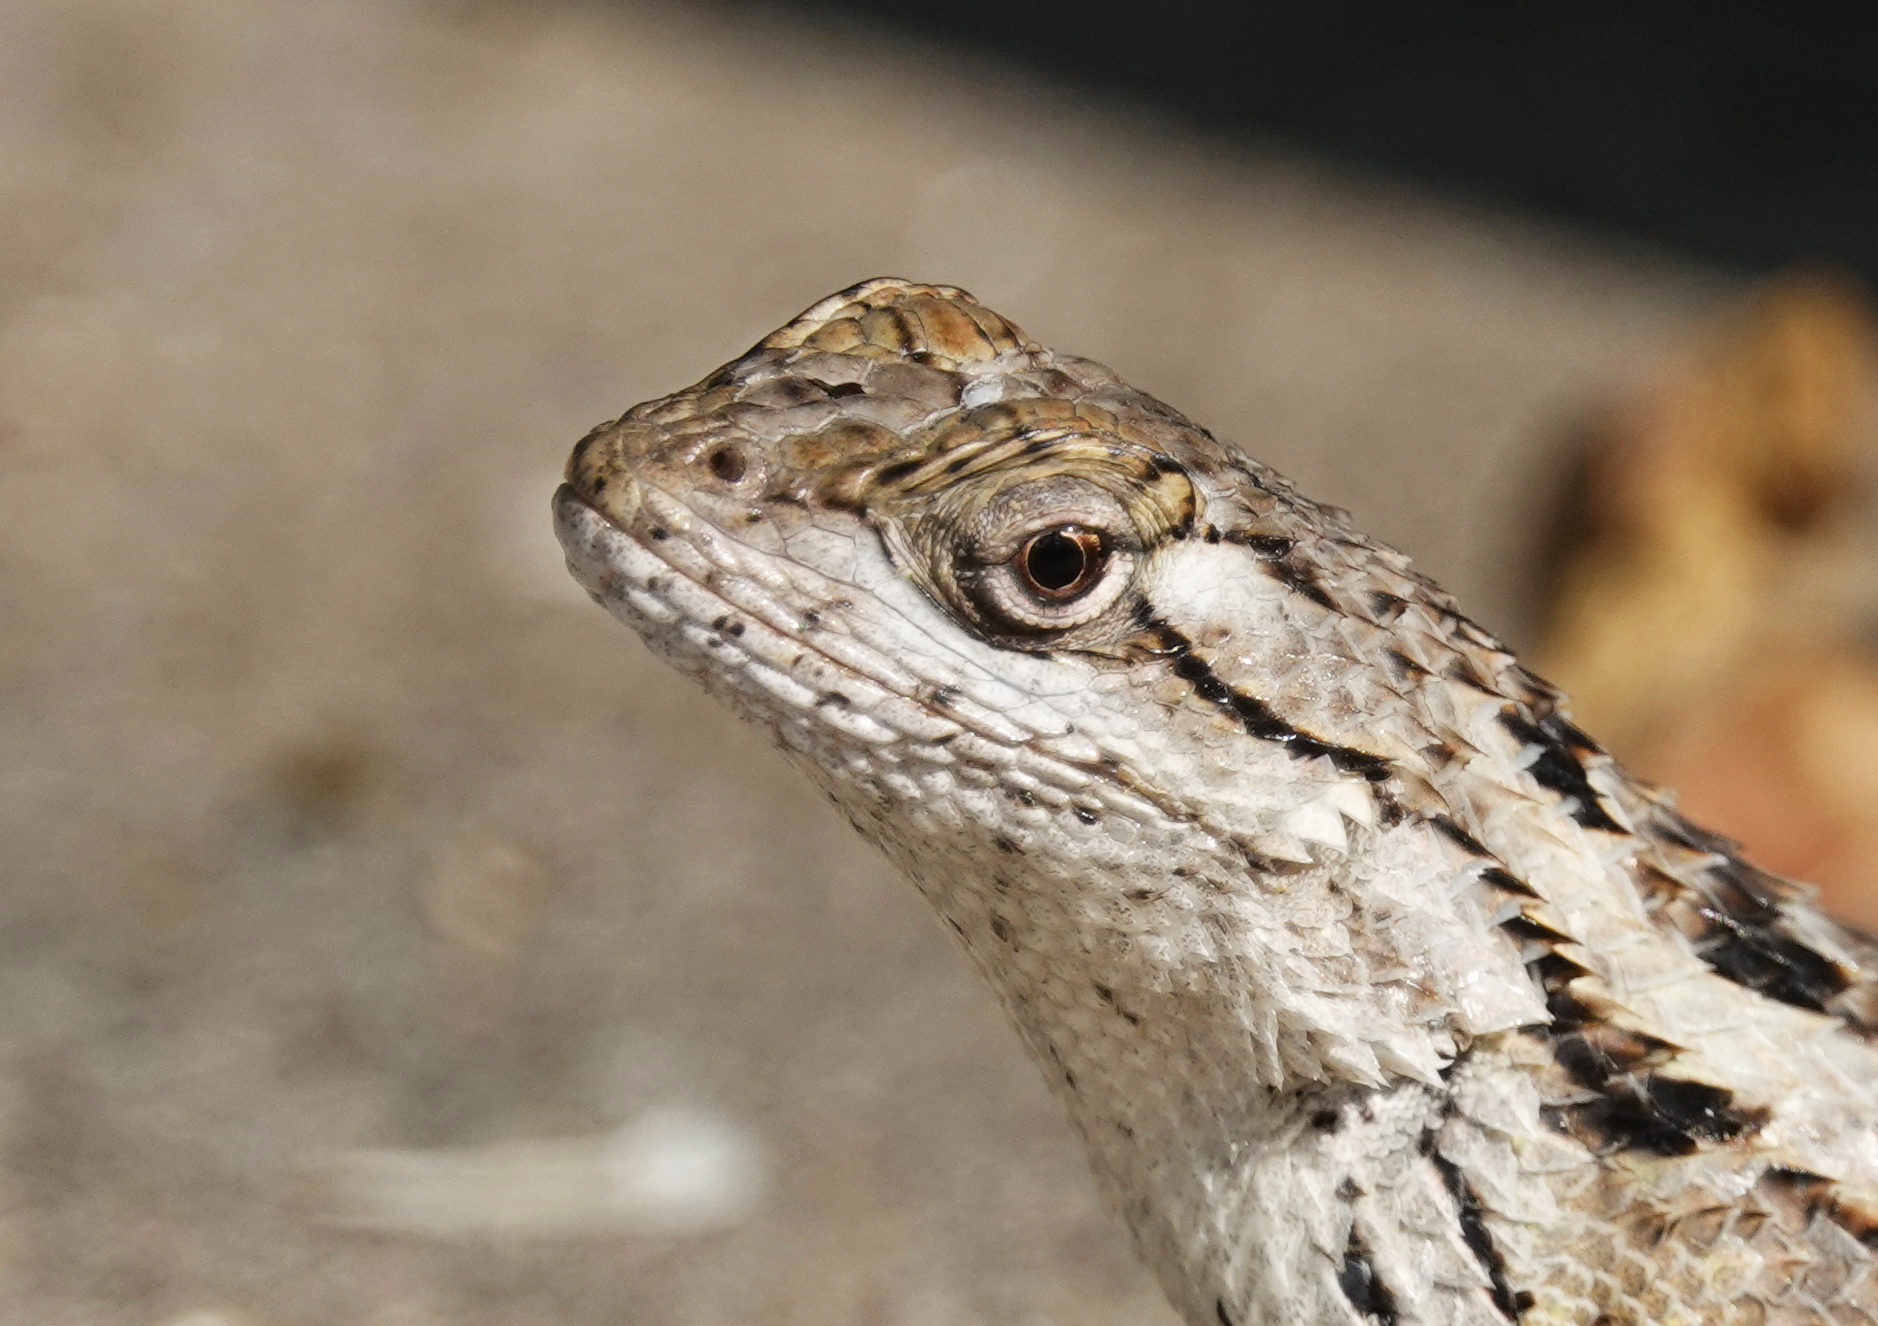 Divine Inspiration Photo #24A - Texas Spiny Lizard Close-Up - 8 x 10